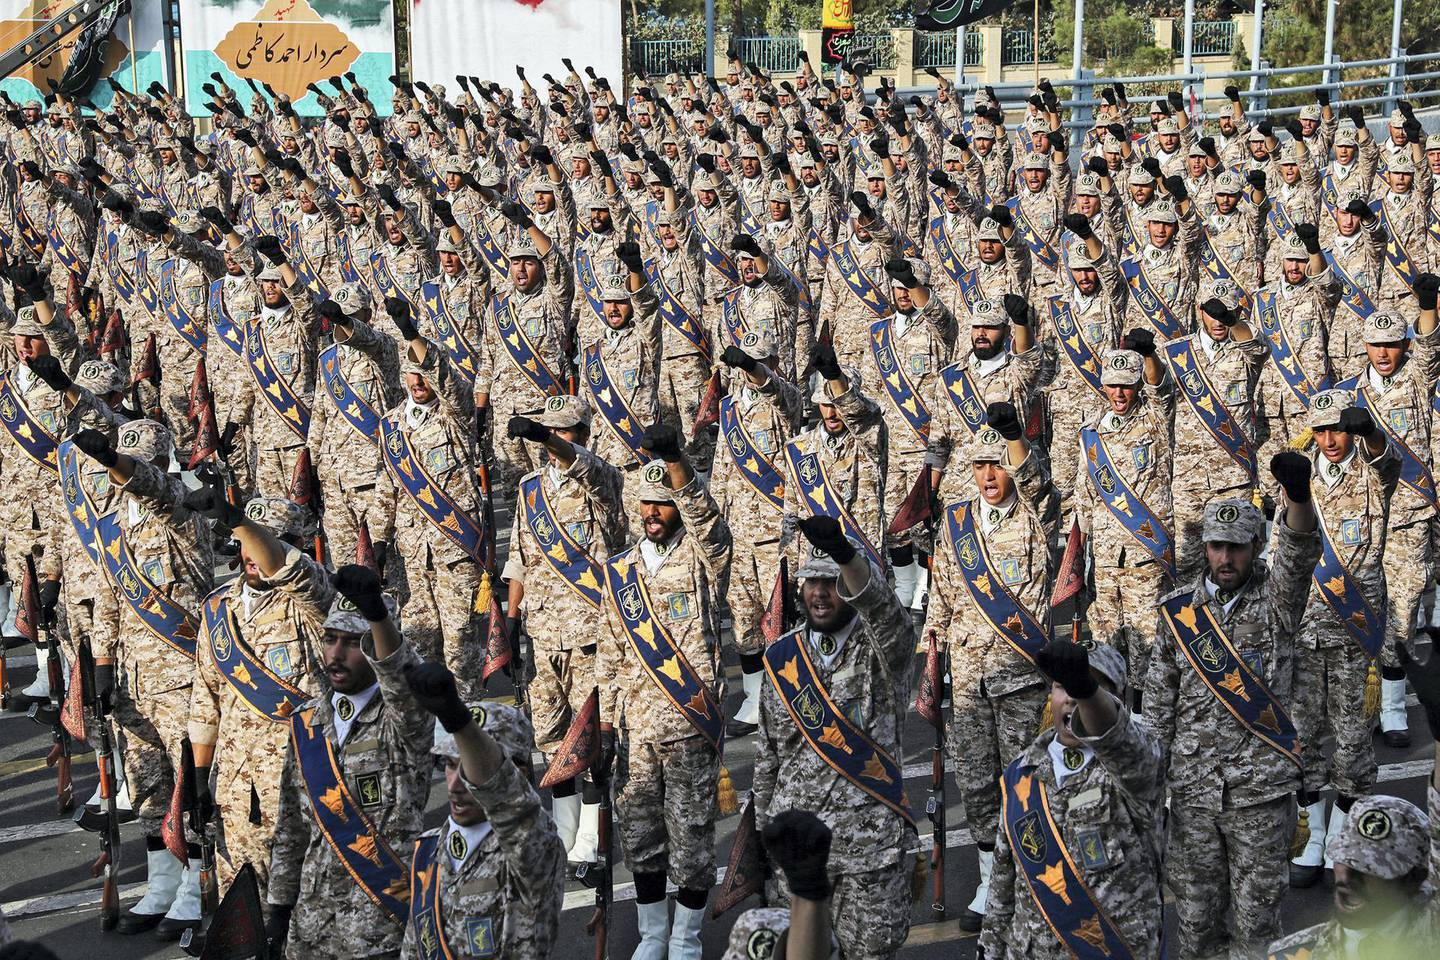 """A handout picture provided by the Iranian presidency on September 22, 2019 shows members of Iran's Islamic Revolutionary Guard Corps (IRGC) giving a military salute during the annual """"Sacred Defence Week"""" military parade marking the anniversary of the outbreak of the devastating 1980-1988 war with Saddam Hussein's Iraq, in the capital Tehran. - Rouhani said on September 22 that the presence of foreign forces creates """"insecurity"""" in the Gulf, after the US ordered the deployment of more troops to the region. """"Foreign forces can cause problems and insecurity for our people and for our region,"""" Rouhani said in a televised speech at the annual military parade, adding that Iran would present to the UN a regional cooperation plan for peace. (Photo by - / Iranian Presidency / AFP) / === RESTRICTED TO EDITORIAL USE - MANDATORY CREDIT """"AFP PHOTO / HO / IRANIAN PRESIDENCY"""" - NO MARKETING NO ADVERTISING CAMPAIGNS - DISTRIBUTED AS A SERVICE TO CLIENTS ==="""